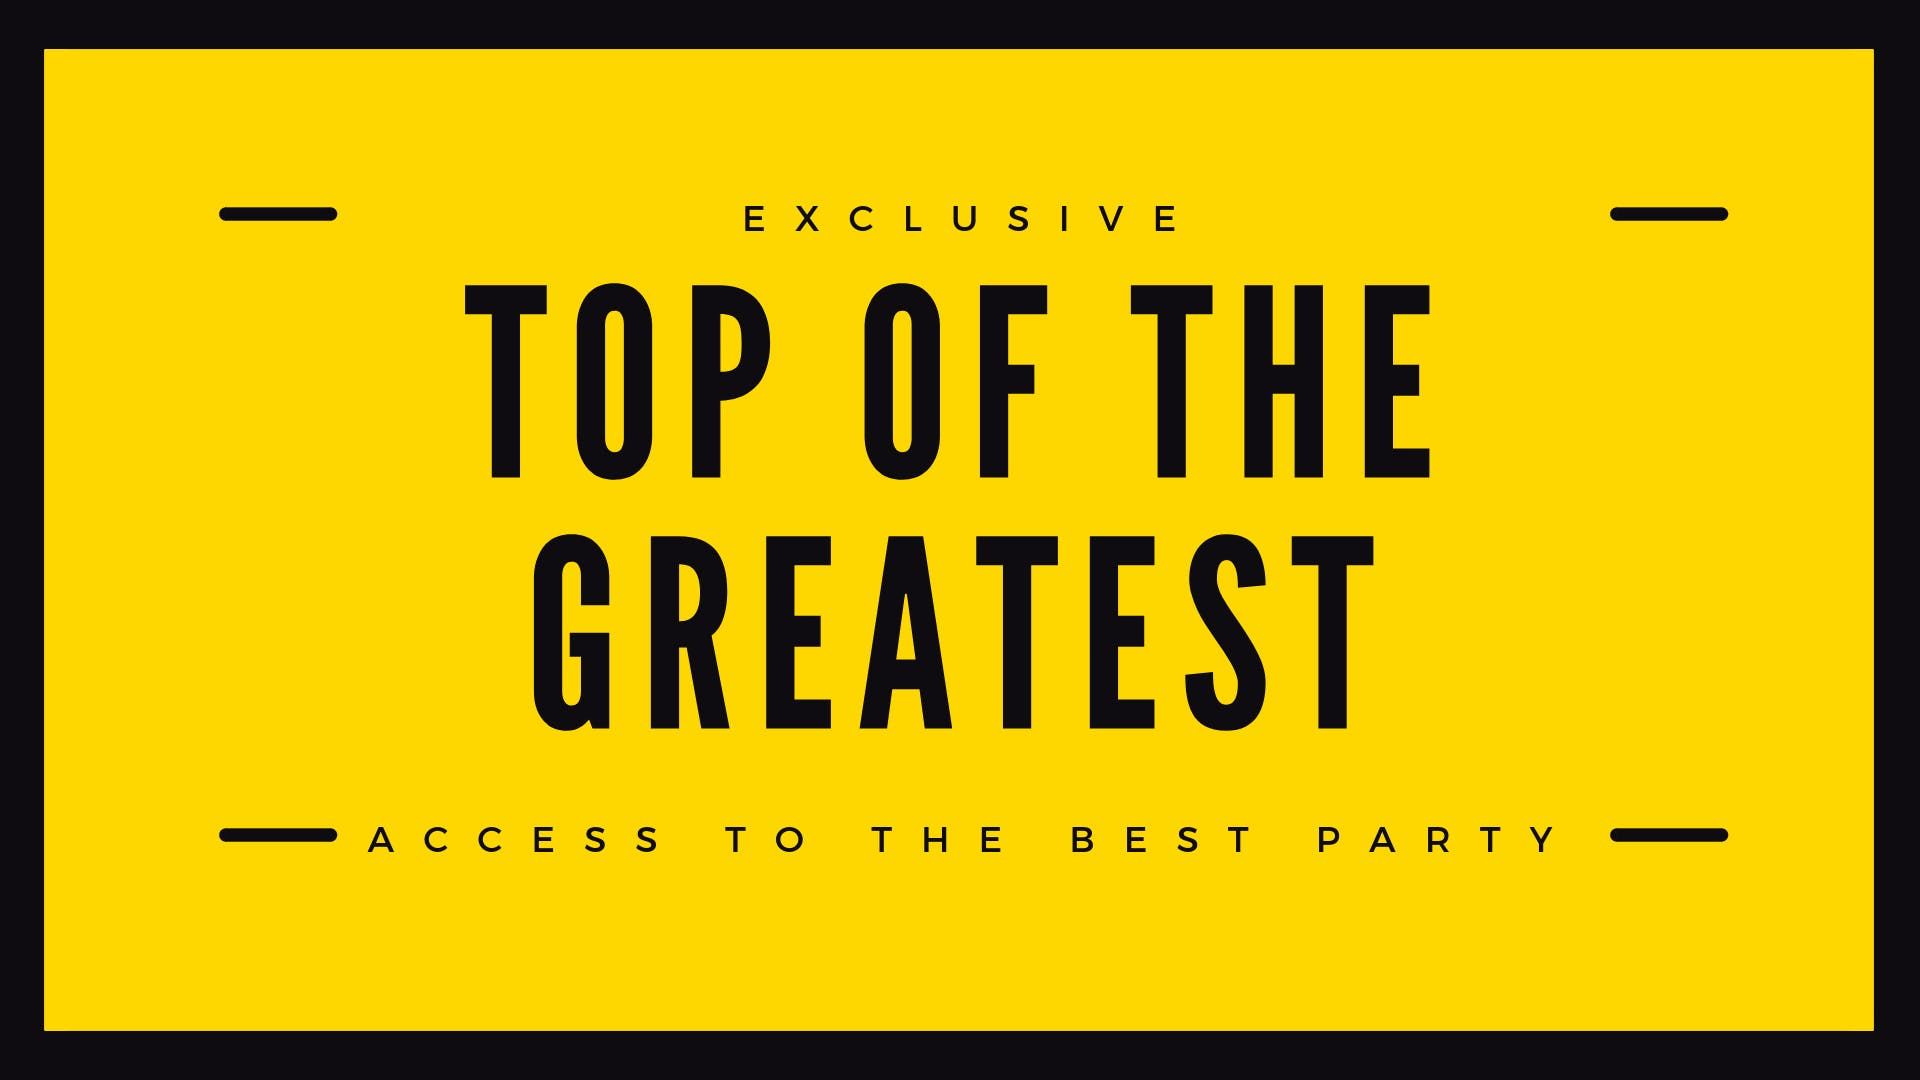 Top of the Greatest Exclusive